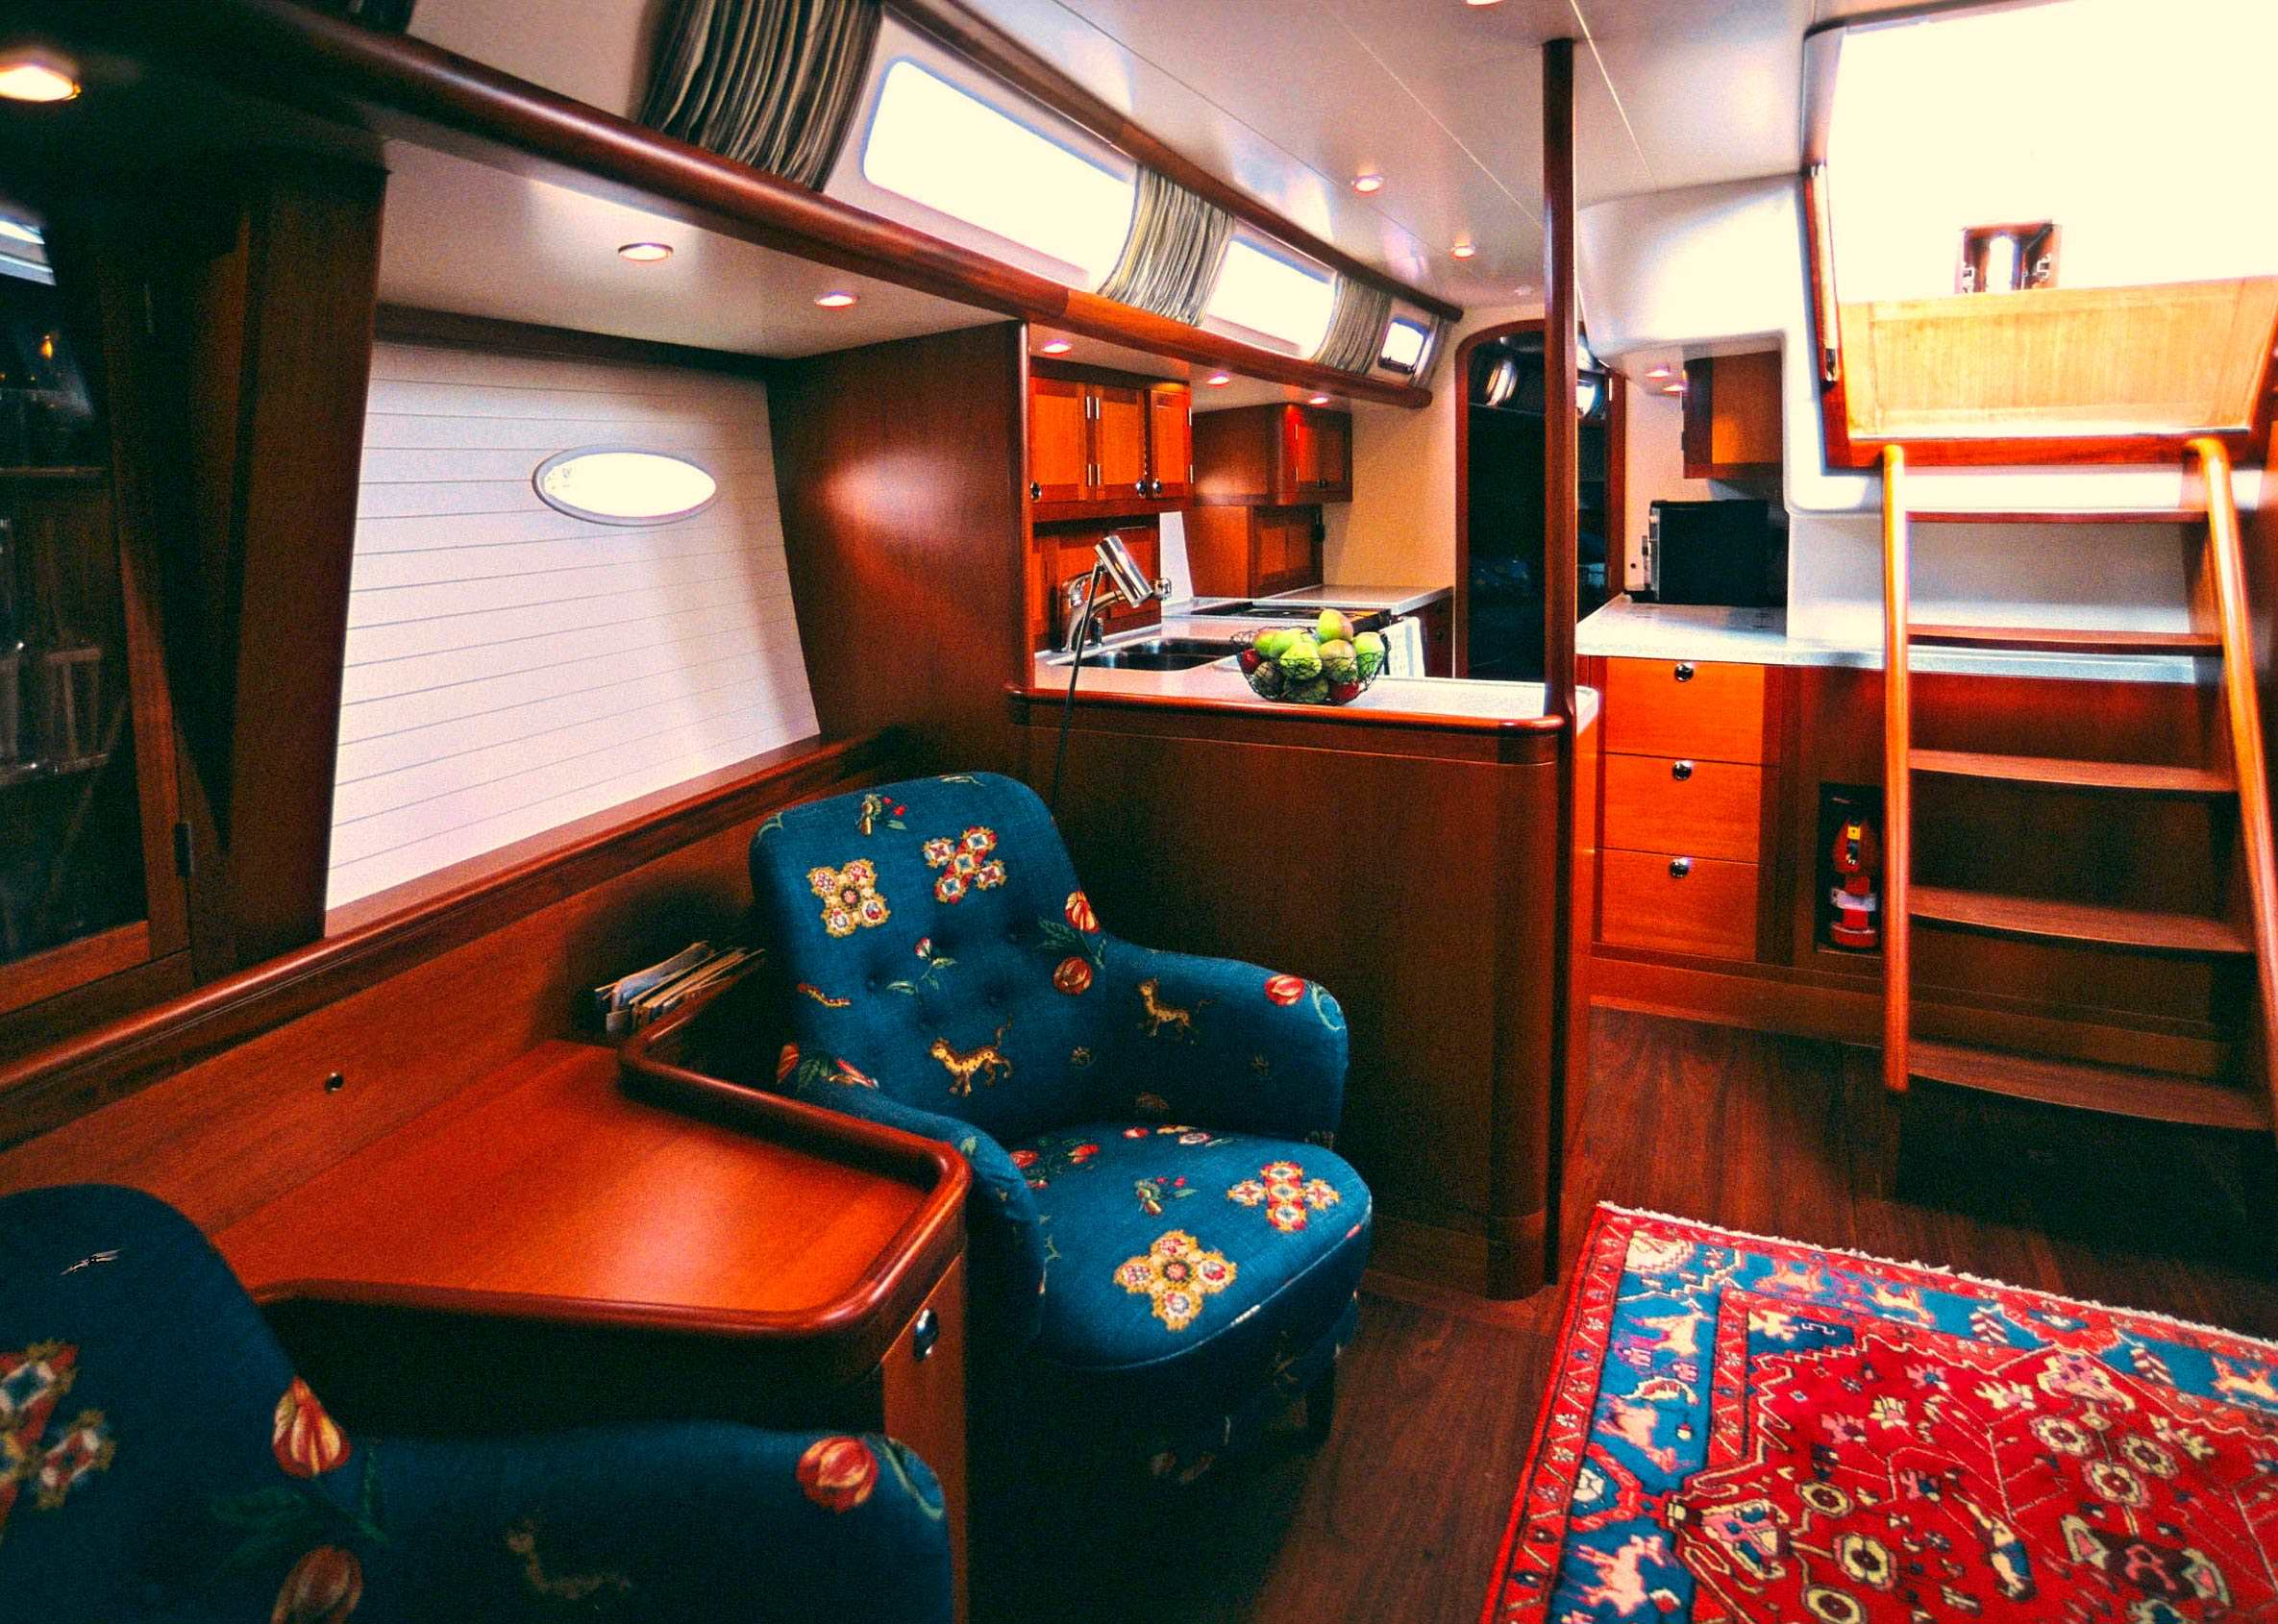 Heyman 57' starboard side seating and galley